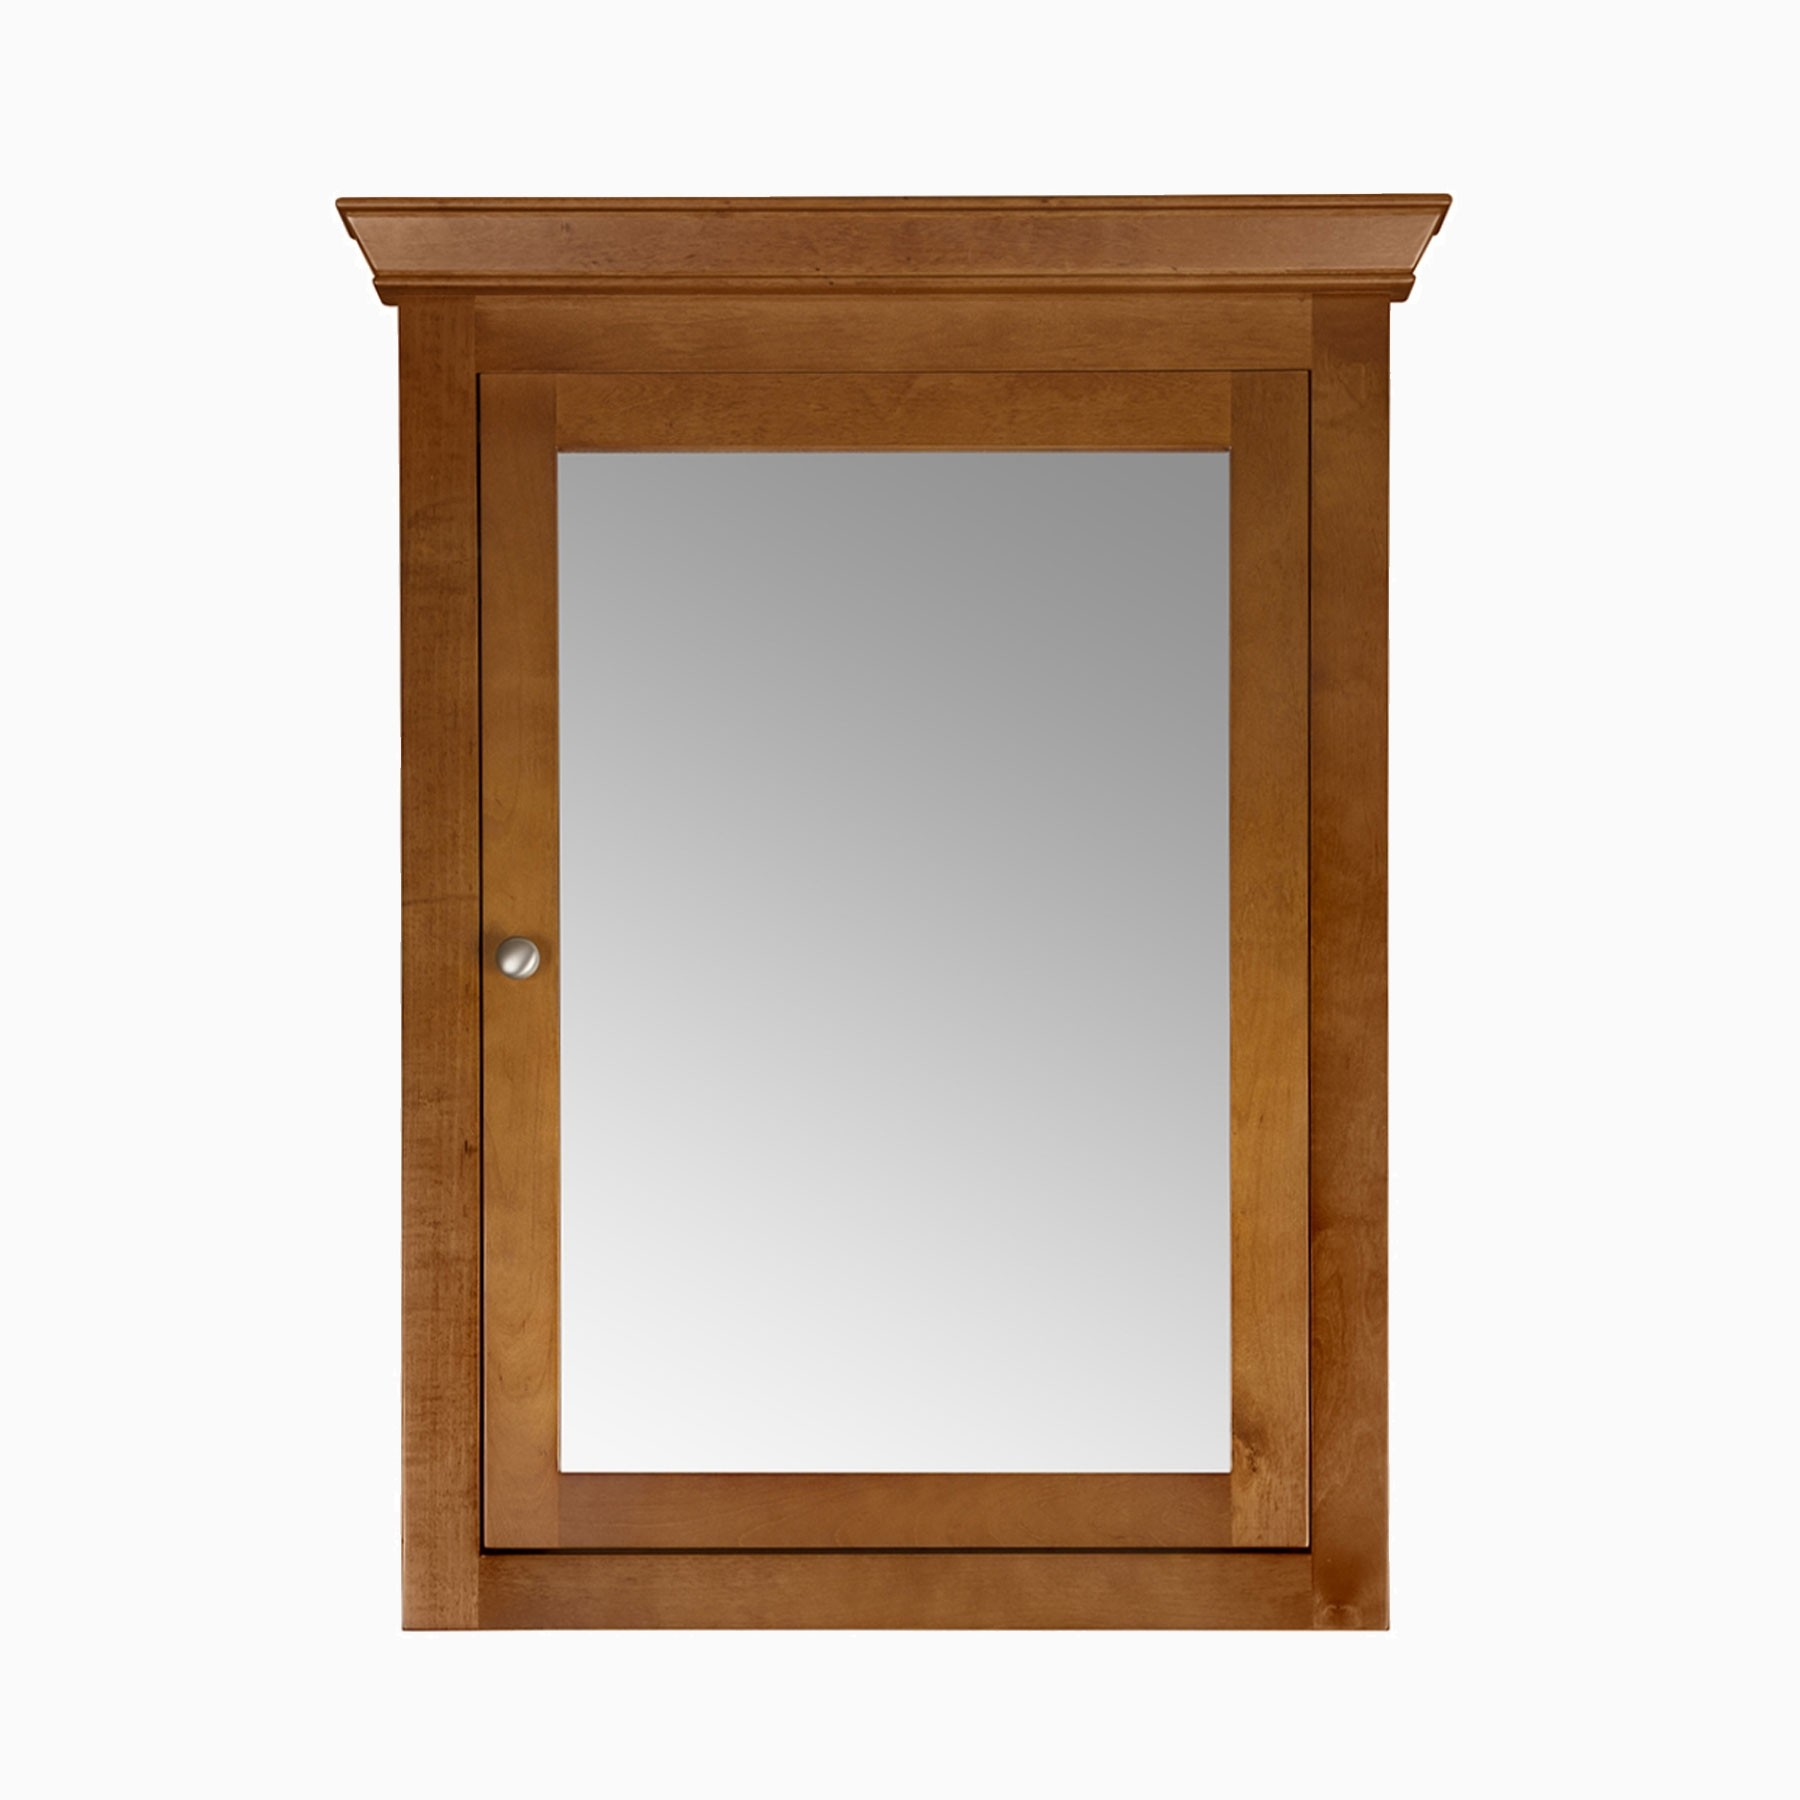 Maria 27 W X 35 H Wood Framed Medicine Cabinet With Mirror And Shelf Natural Cherry